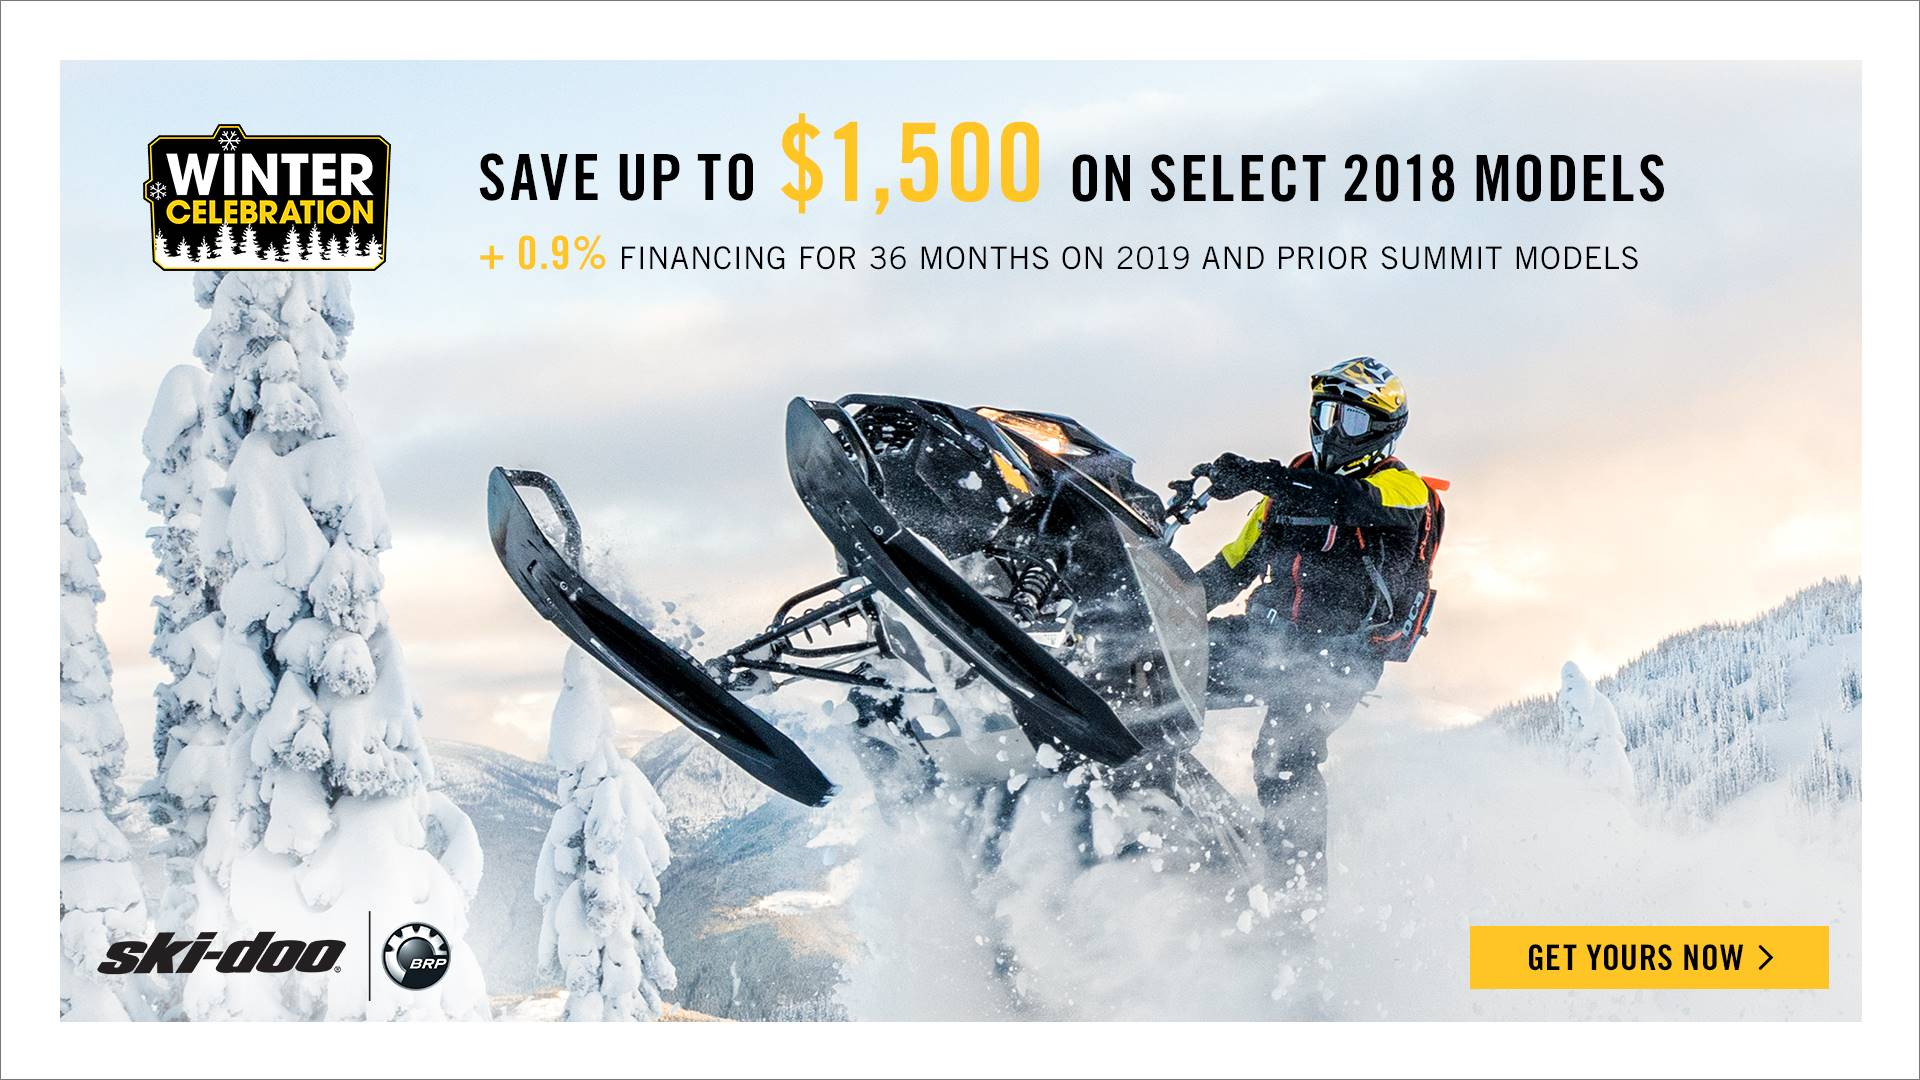 Ski-Doo - Winter Celebration